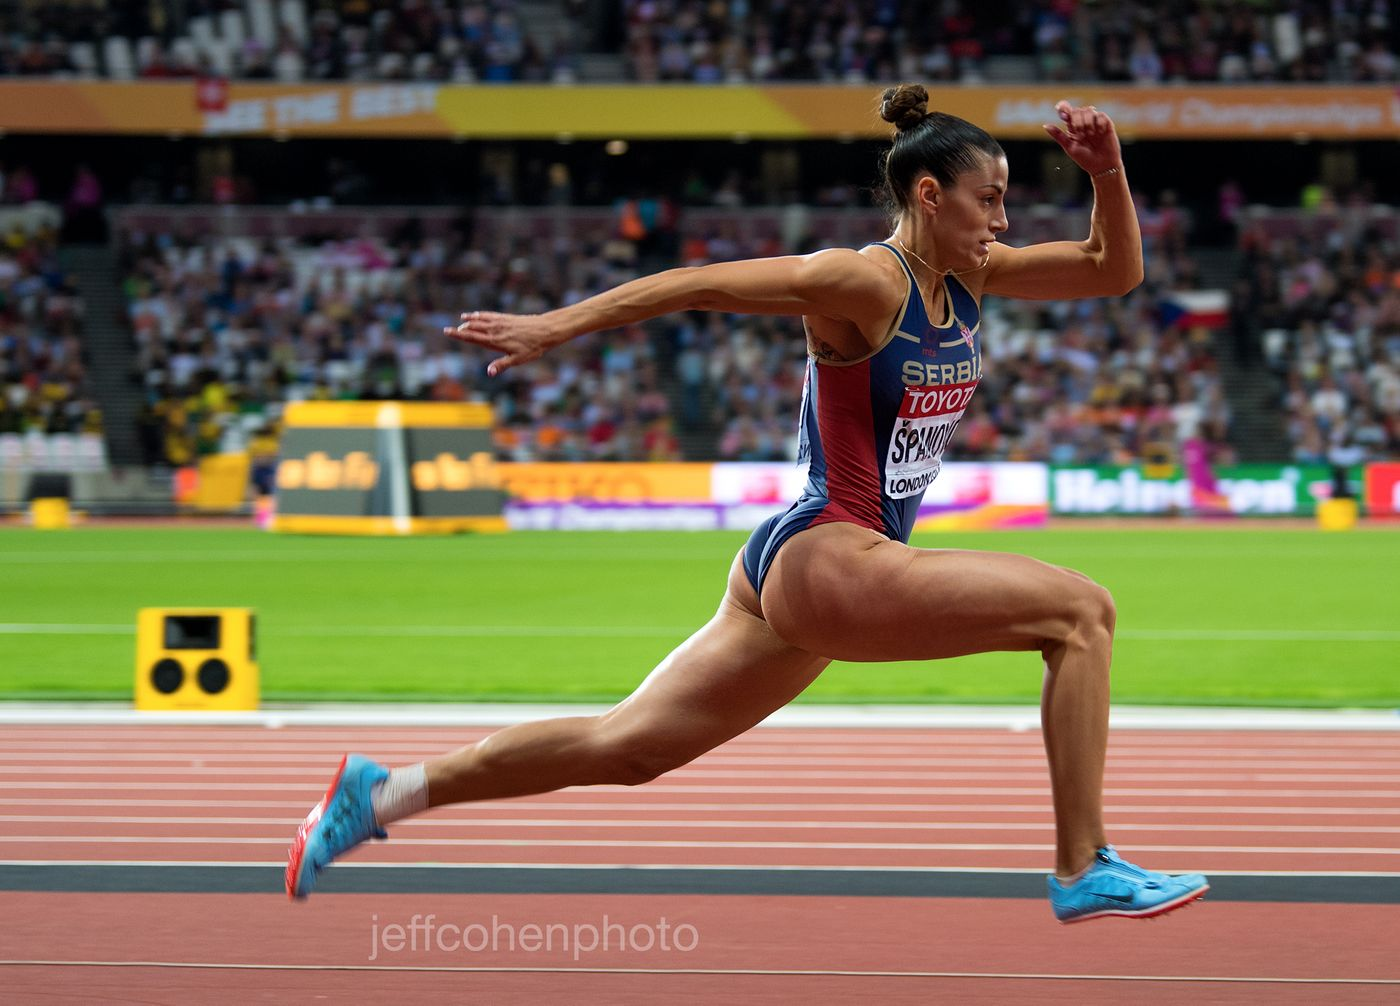 2017-IAAF-WC-London-night-8-spanovic-ljw--1744--jeff-cohen-photo--web.jpg